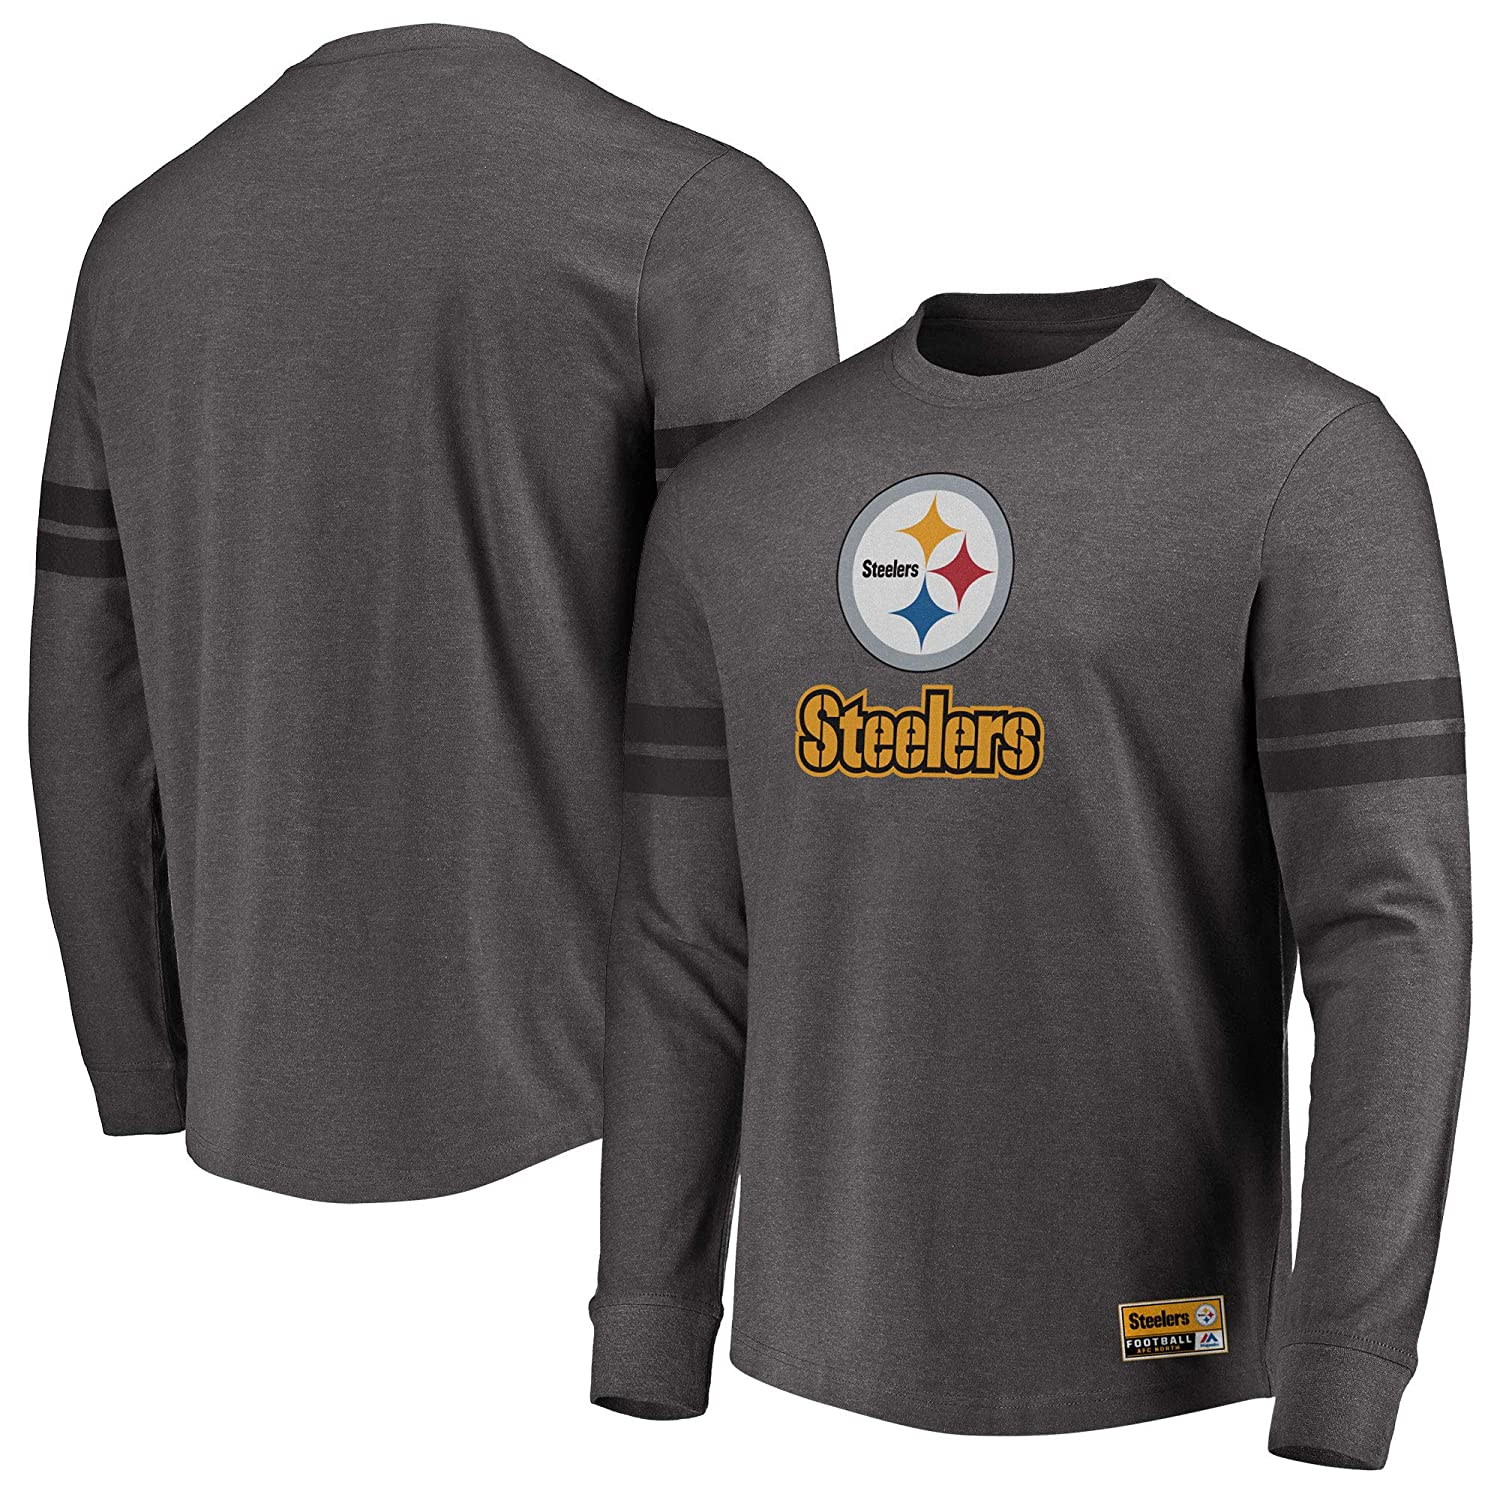 low priced 643dc 76458 Pittsburgh Steelers Flex Double Stripe Long Long Long Sleeve ...